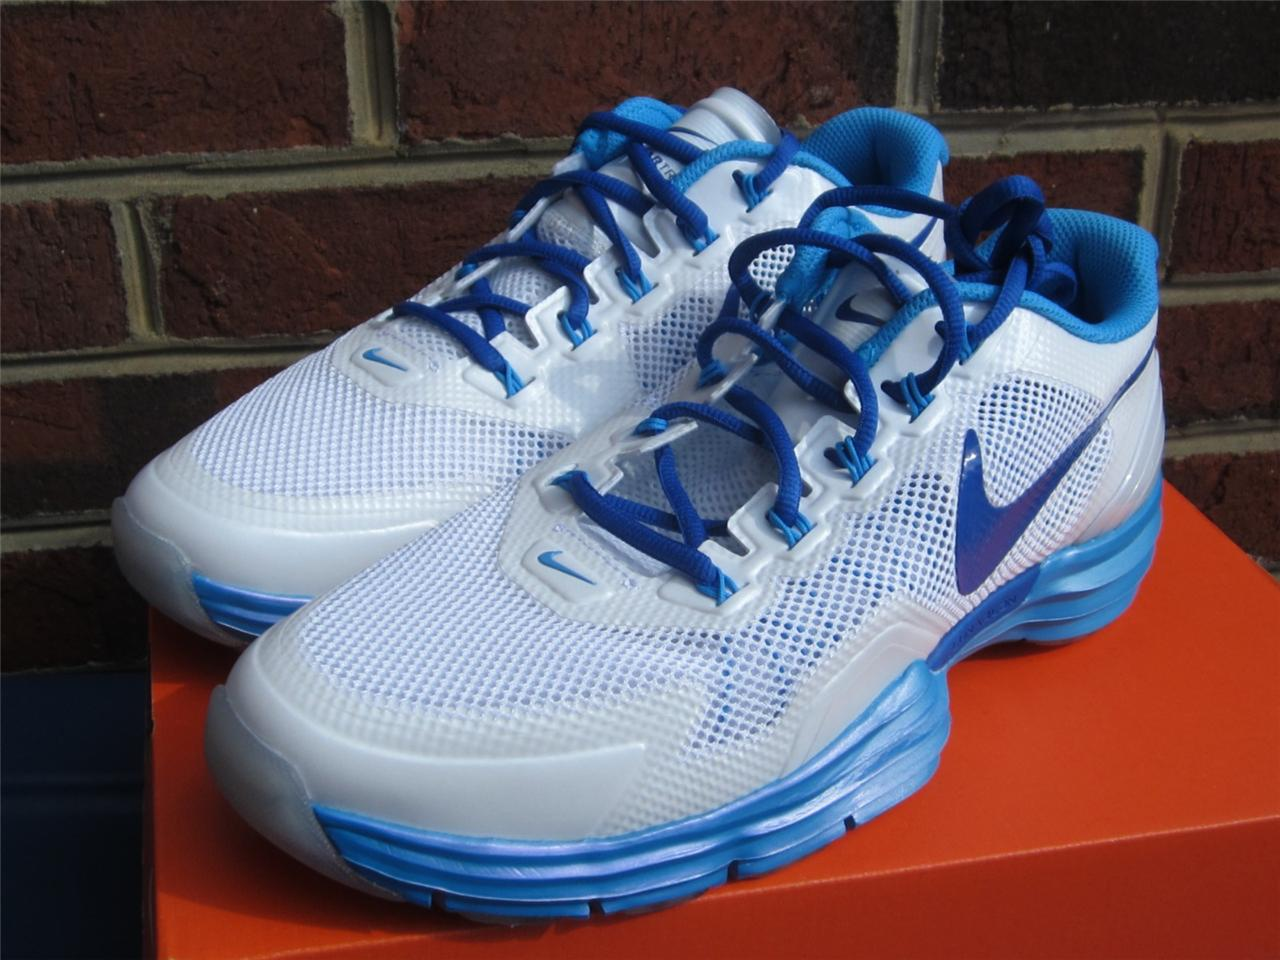 wholesale dealer 2f7ba 9b702 blue white nike lunar tr1 running shoes cross trainers tr1 white 598510 103  ...